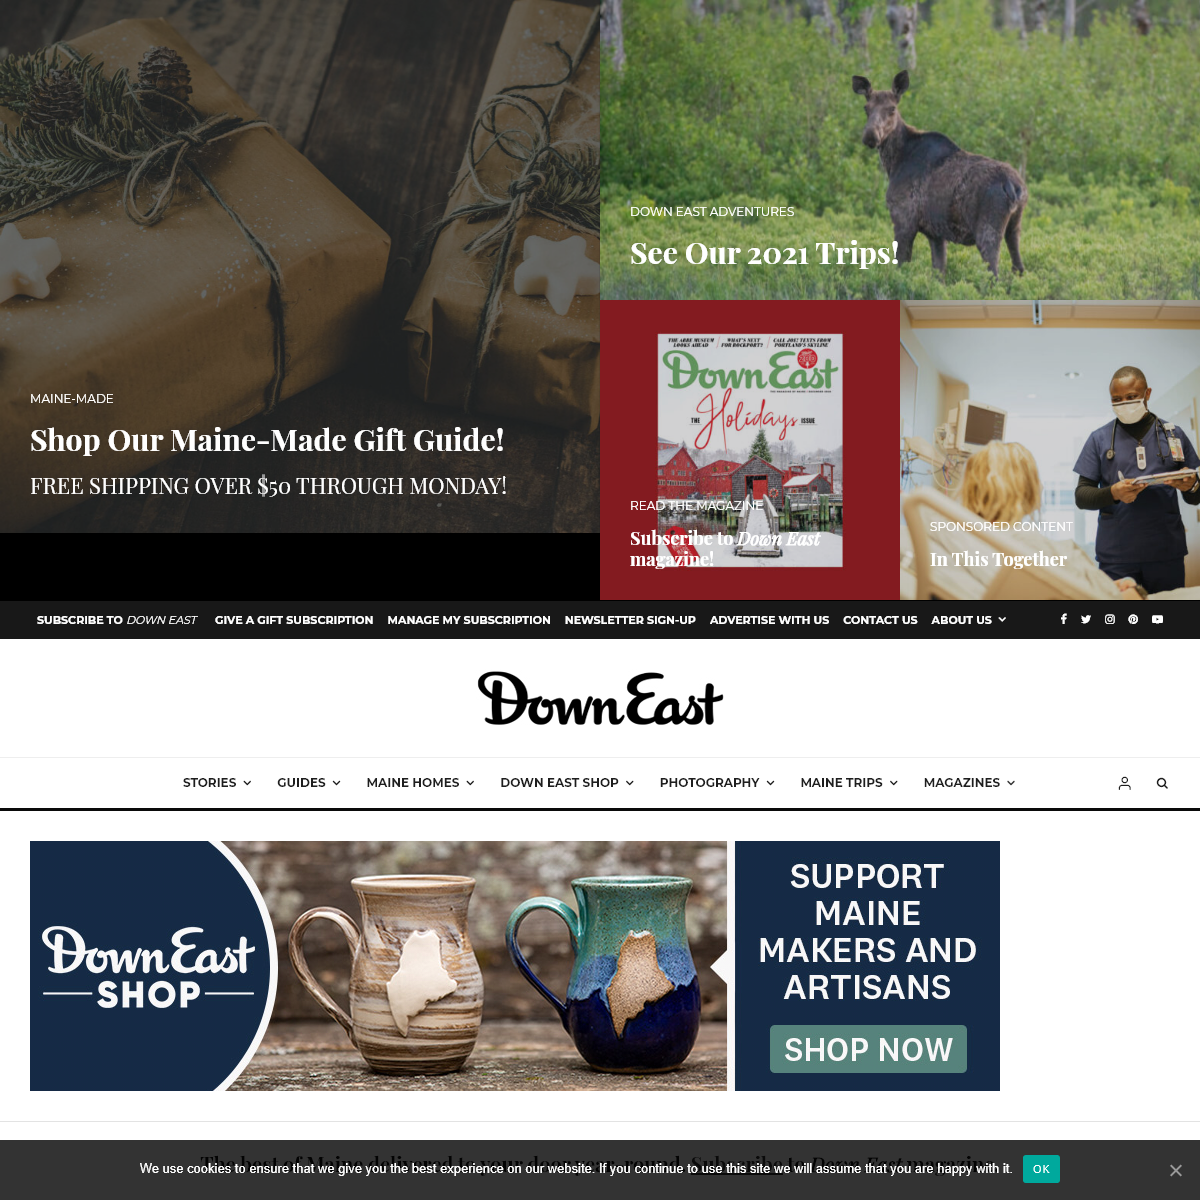 Experience the Best of Maine - Down East Magazine